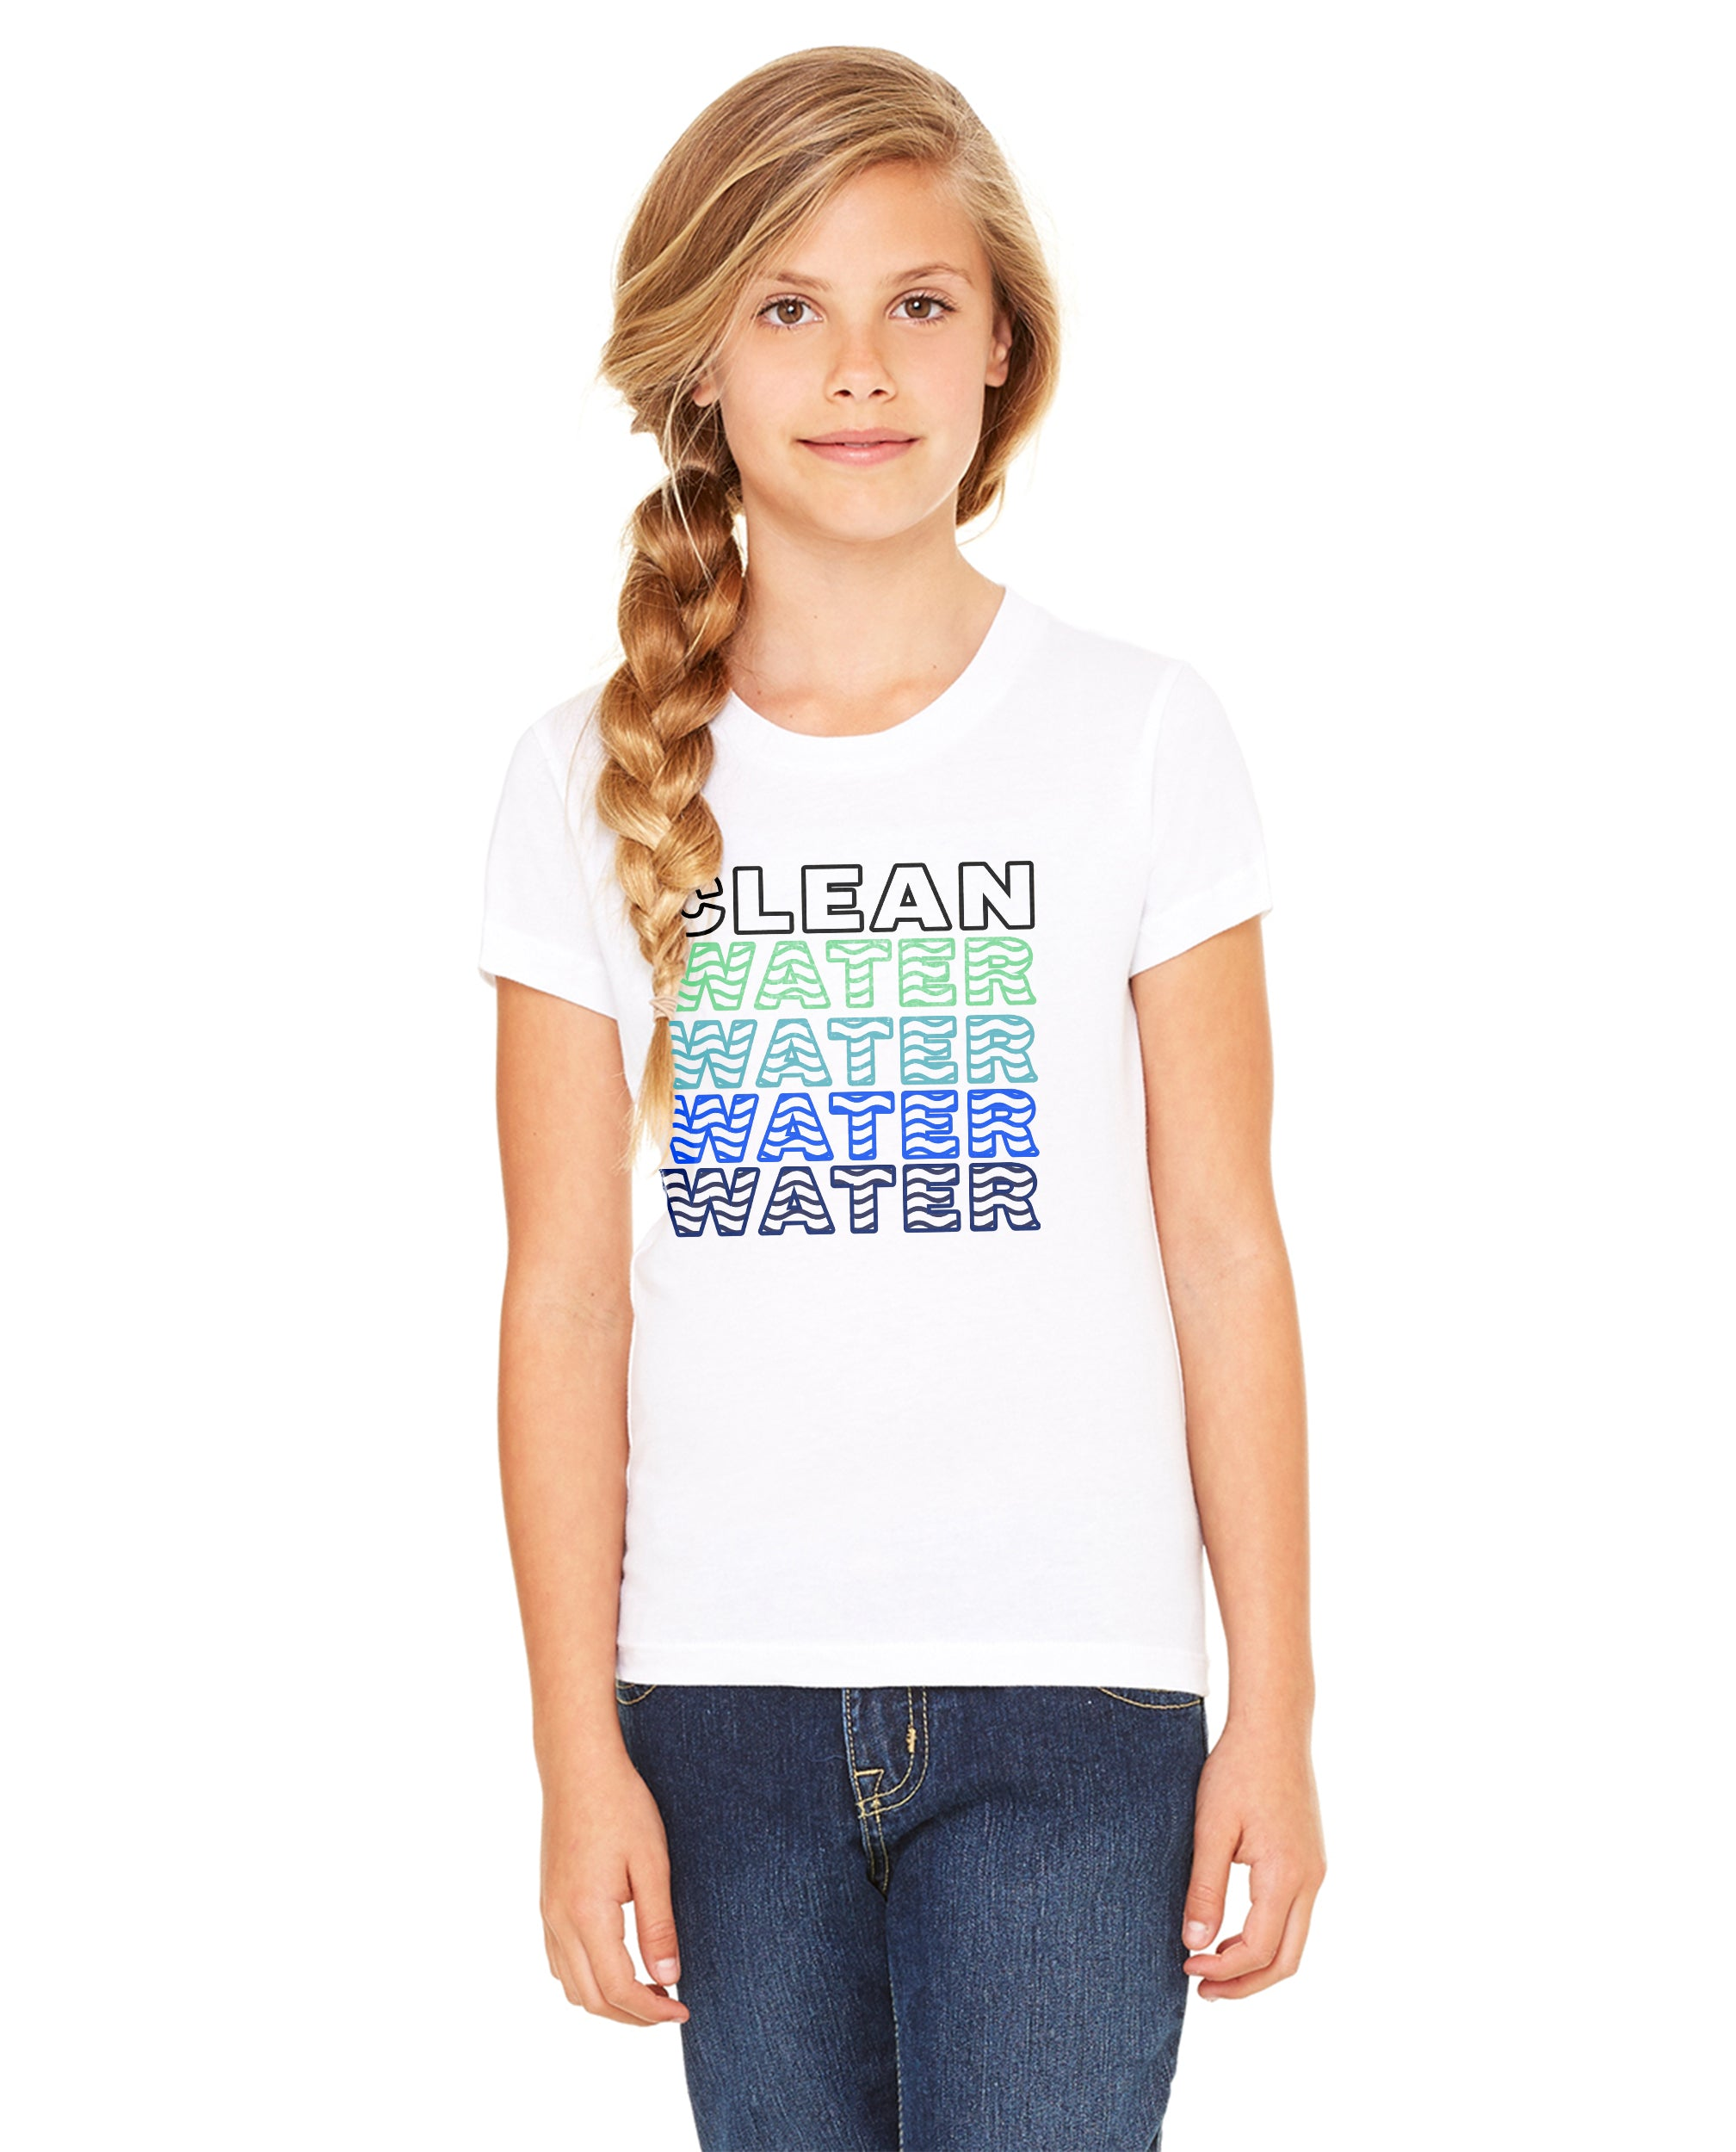 Clean Water Water Water Girls Premium Short Sleeve Crew